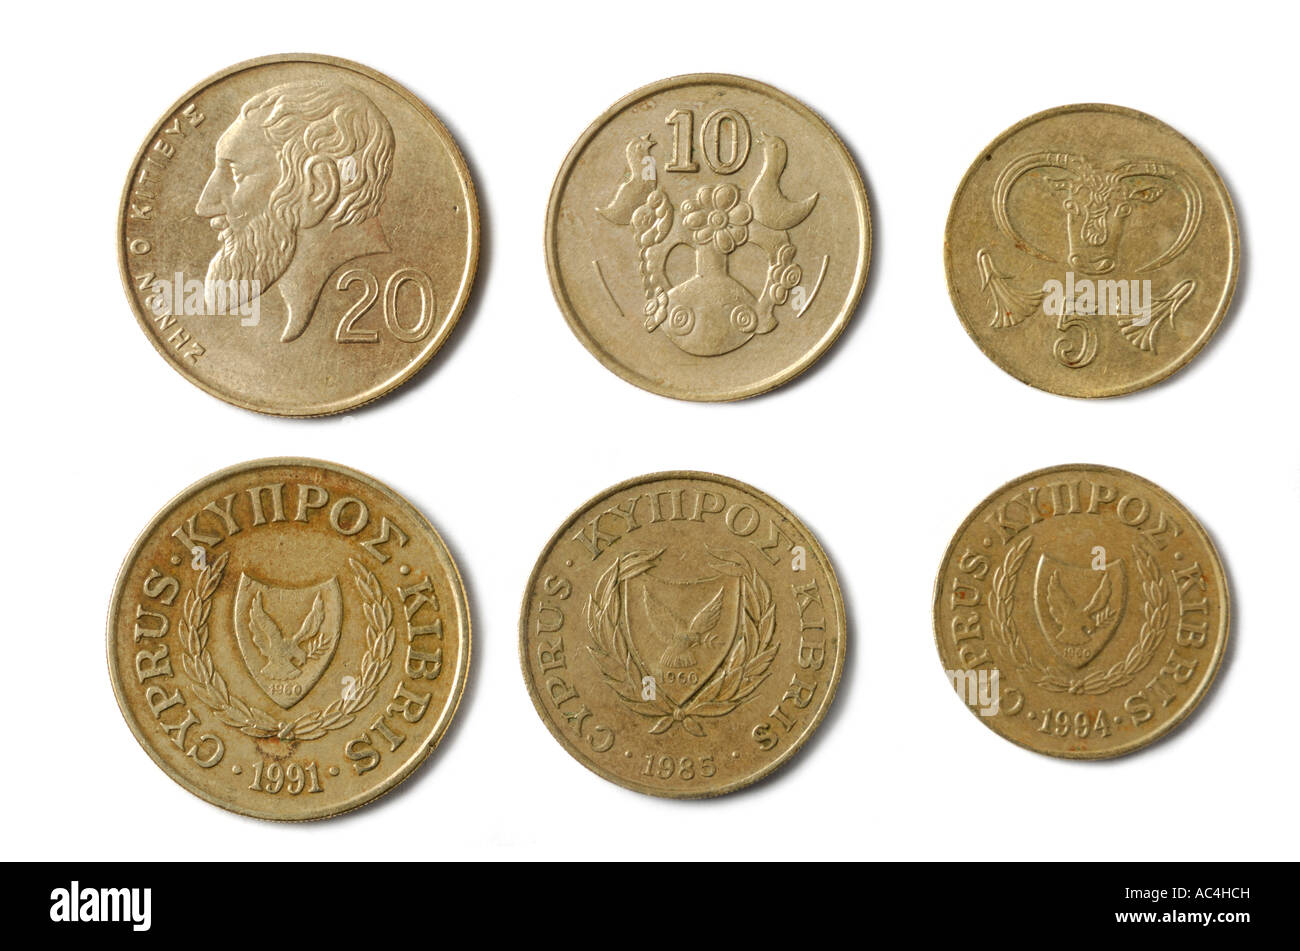 Cyprus cents 20 10 5 coins obverse and revers Isolated over white cutout - Stock Image